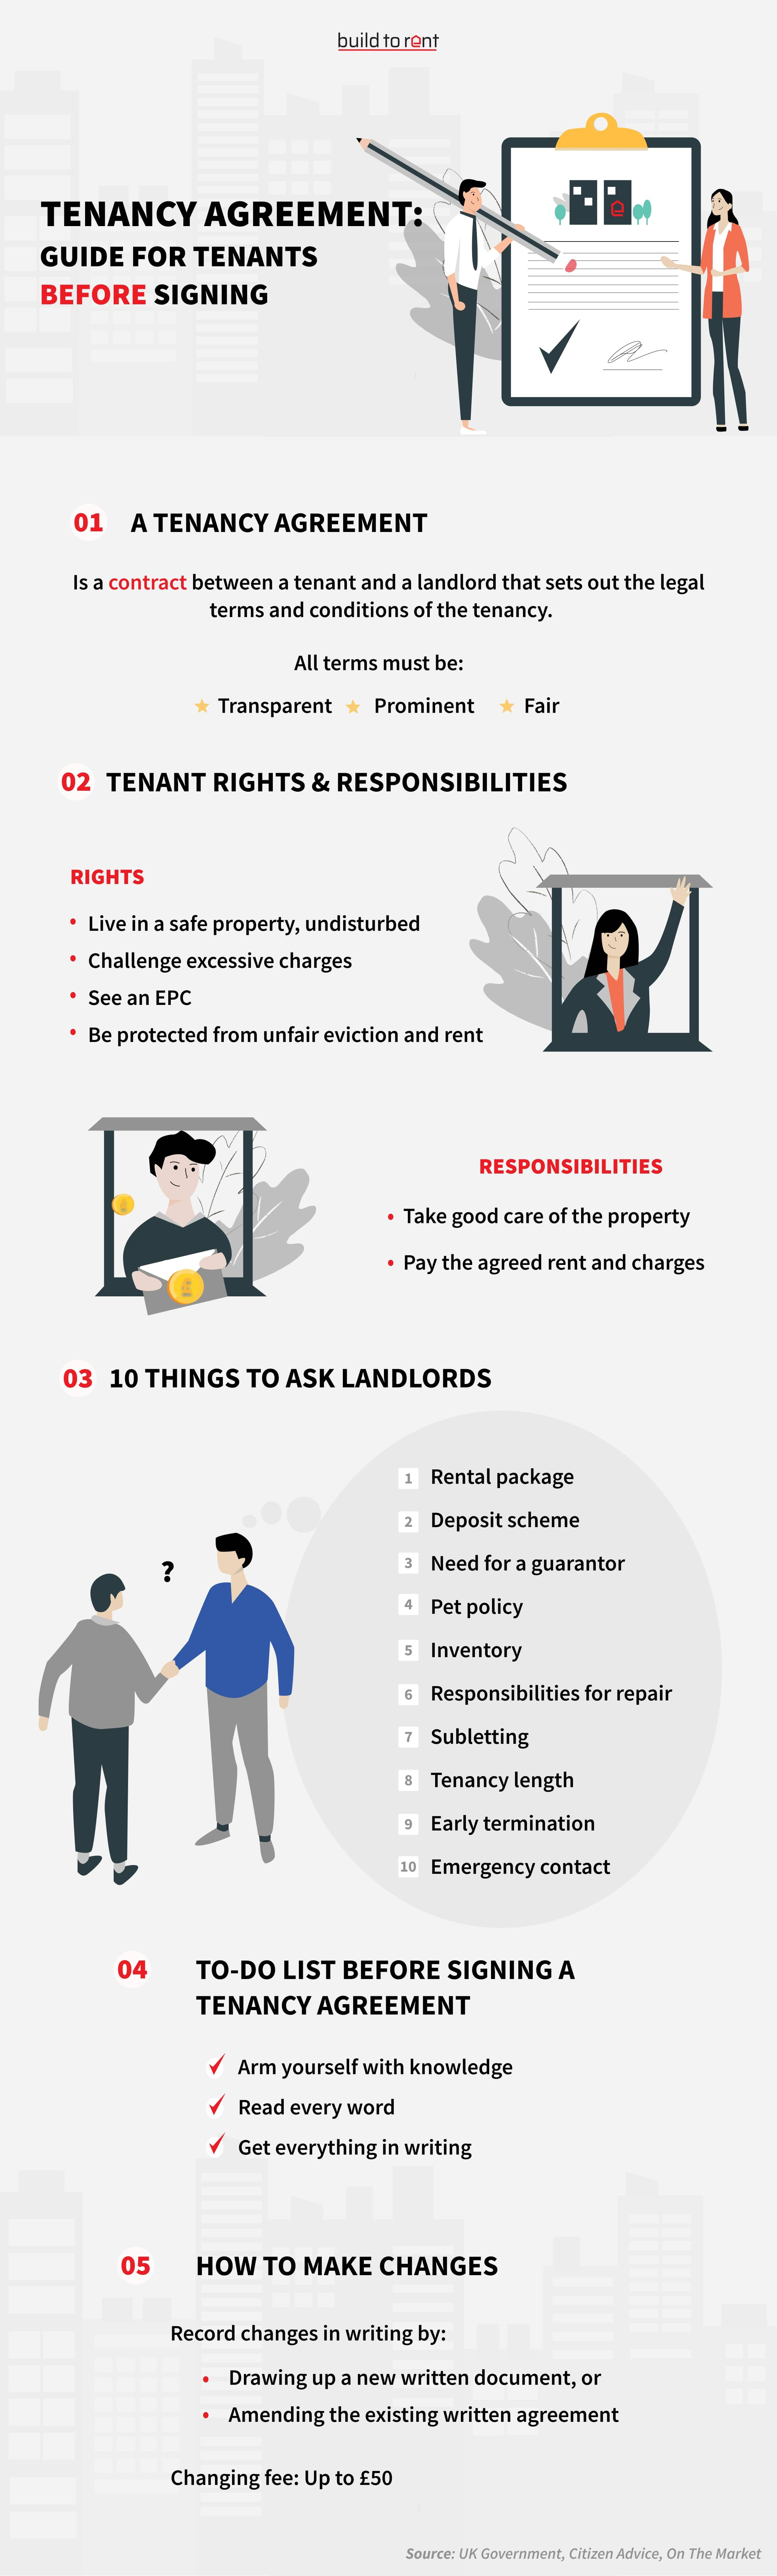 10 Questions to Ask Landlords Before Signing a Tenancy Agreement